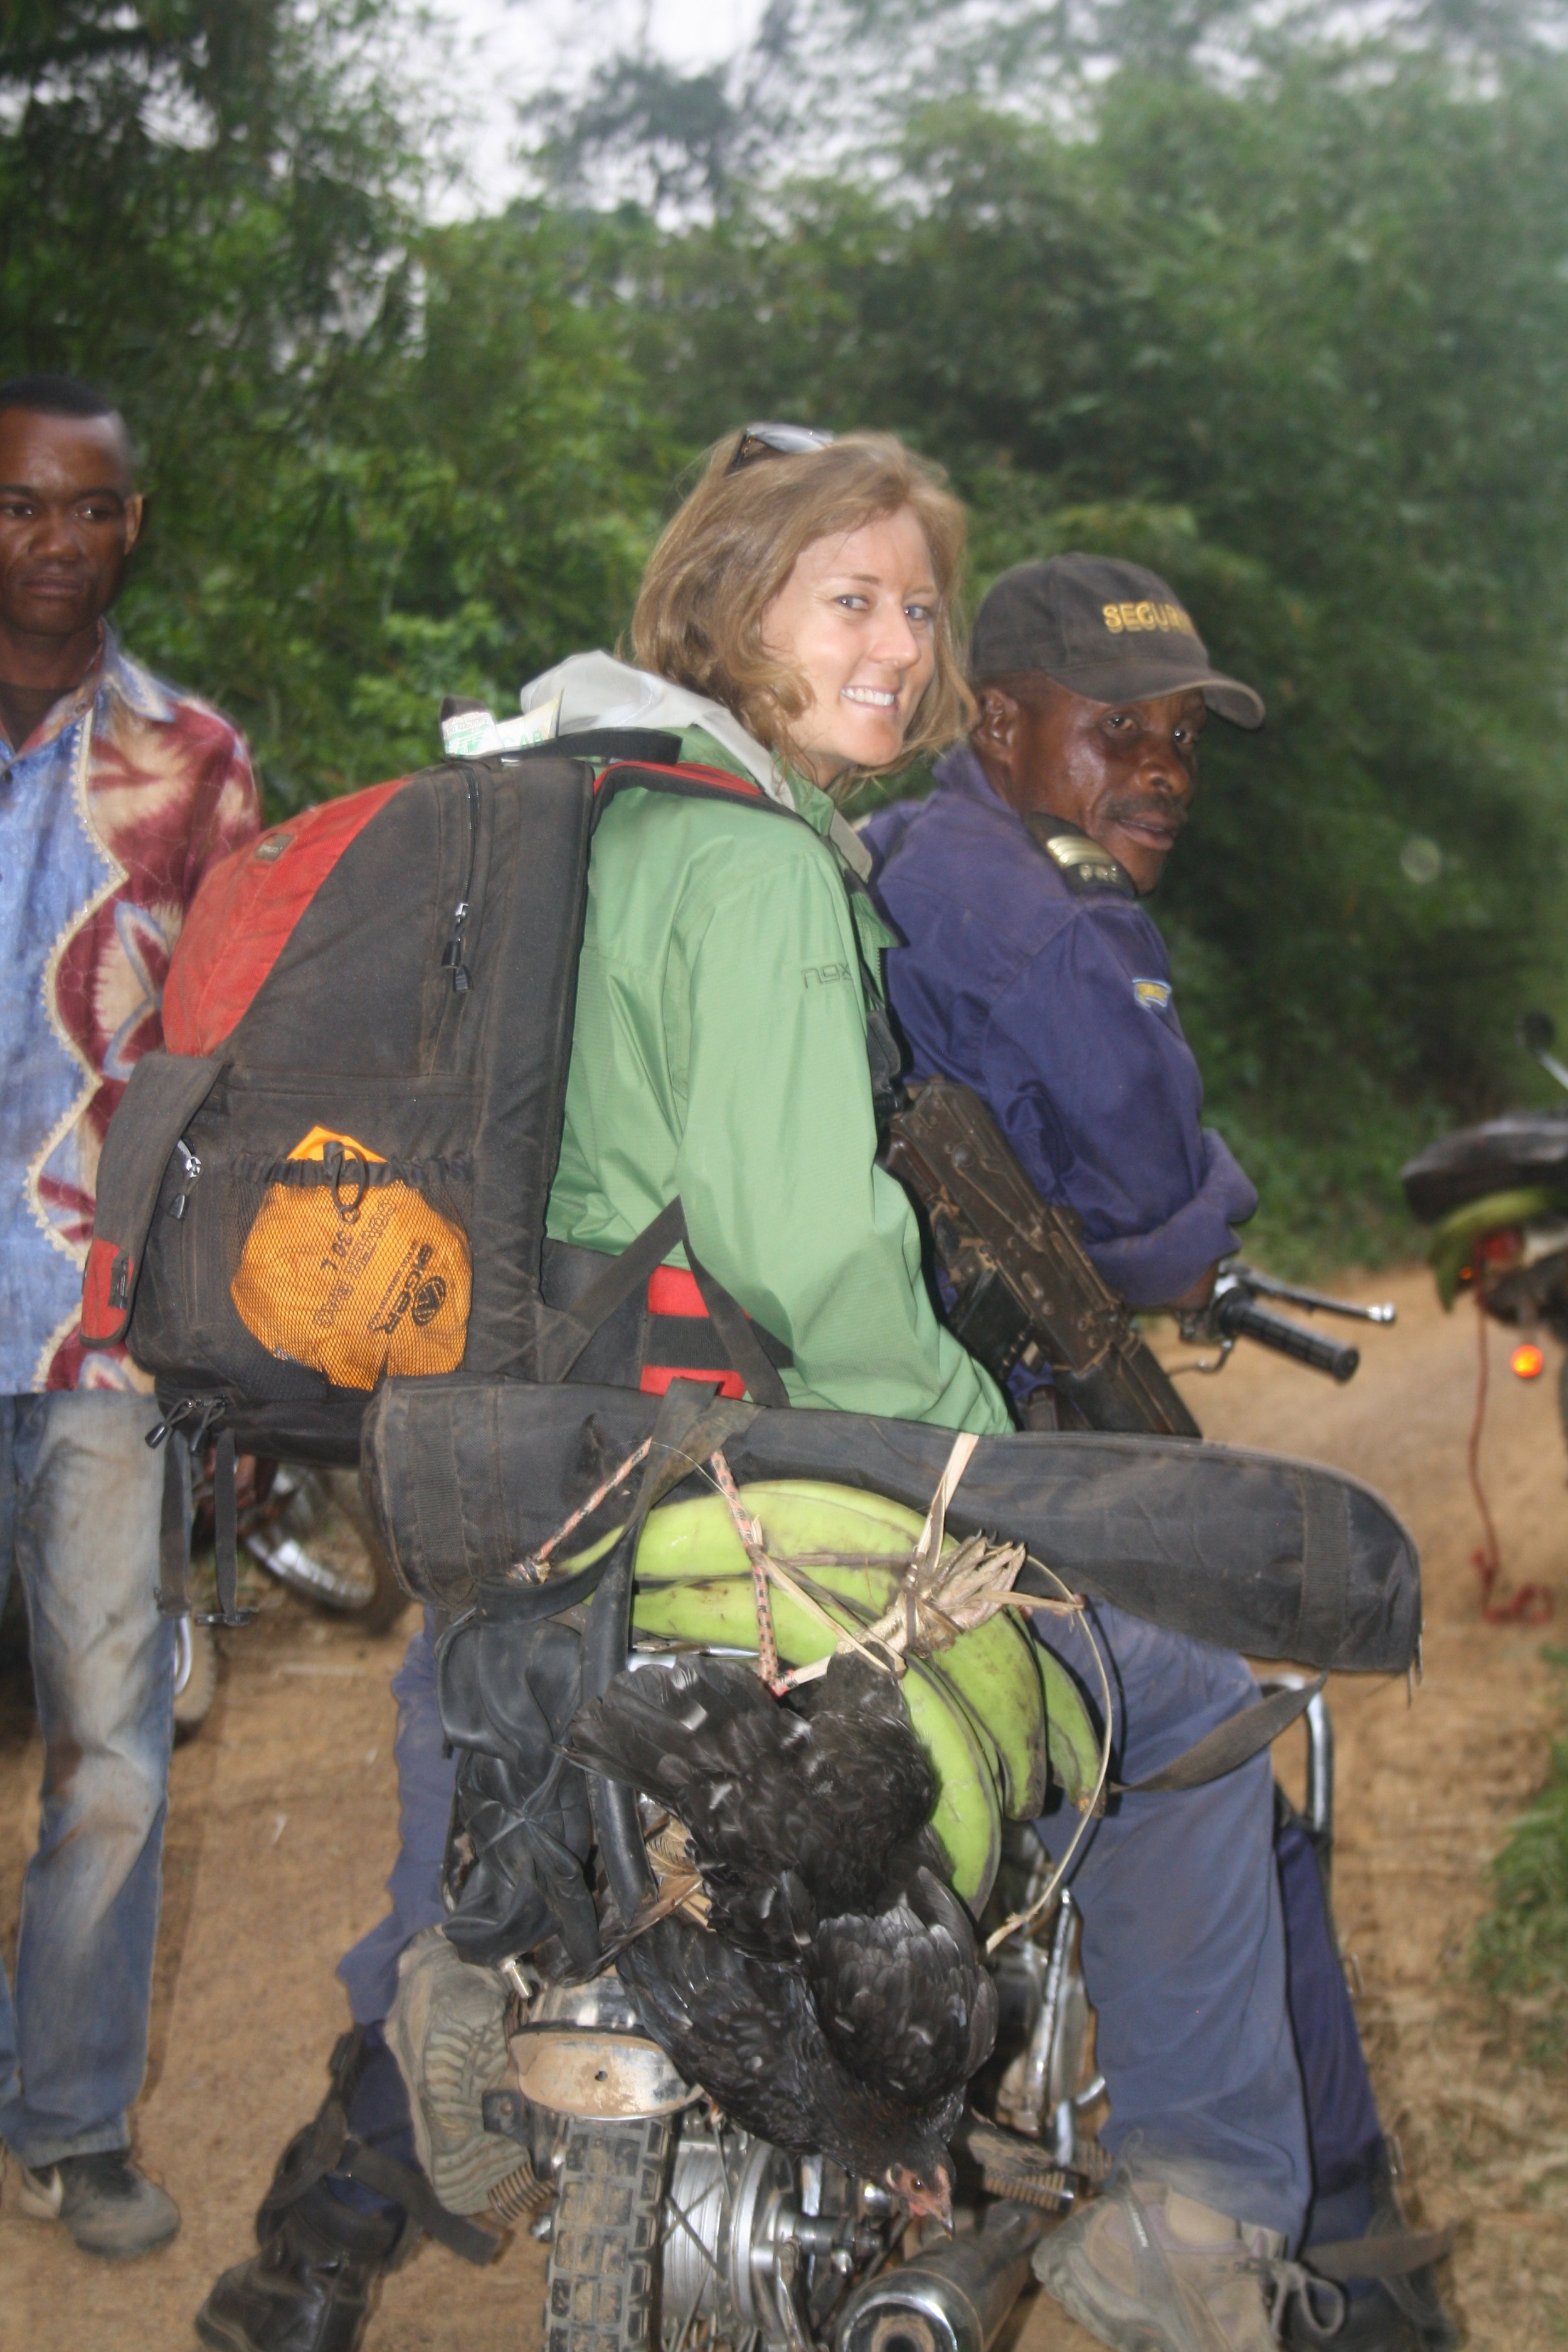 Heading into the forest in the Democratic Republic of Congo for CIFOR - that's my tripod between the AK47 and the chickens.